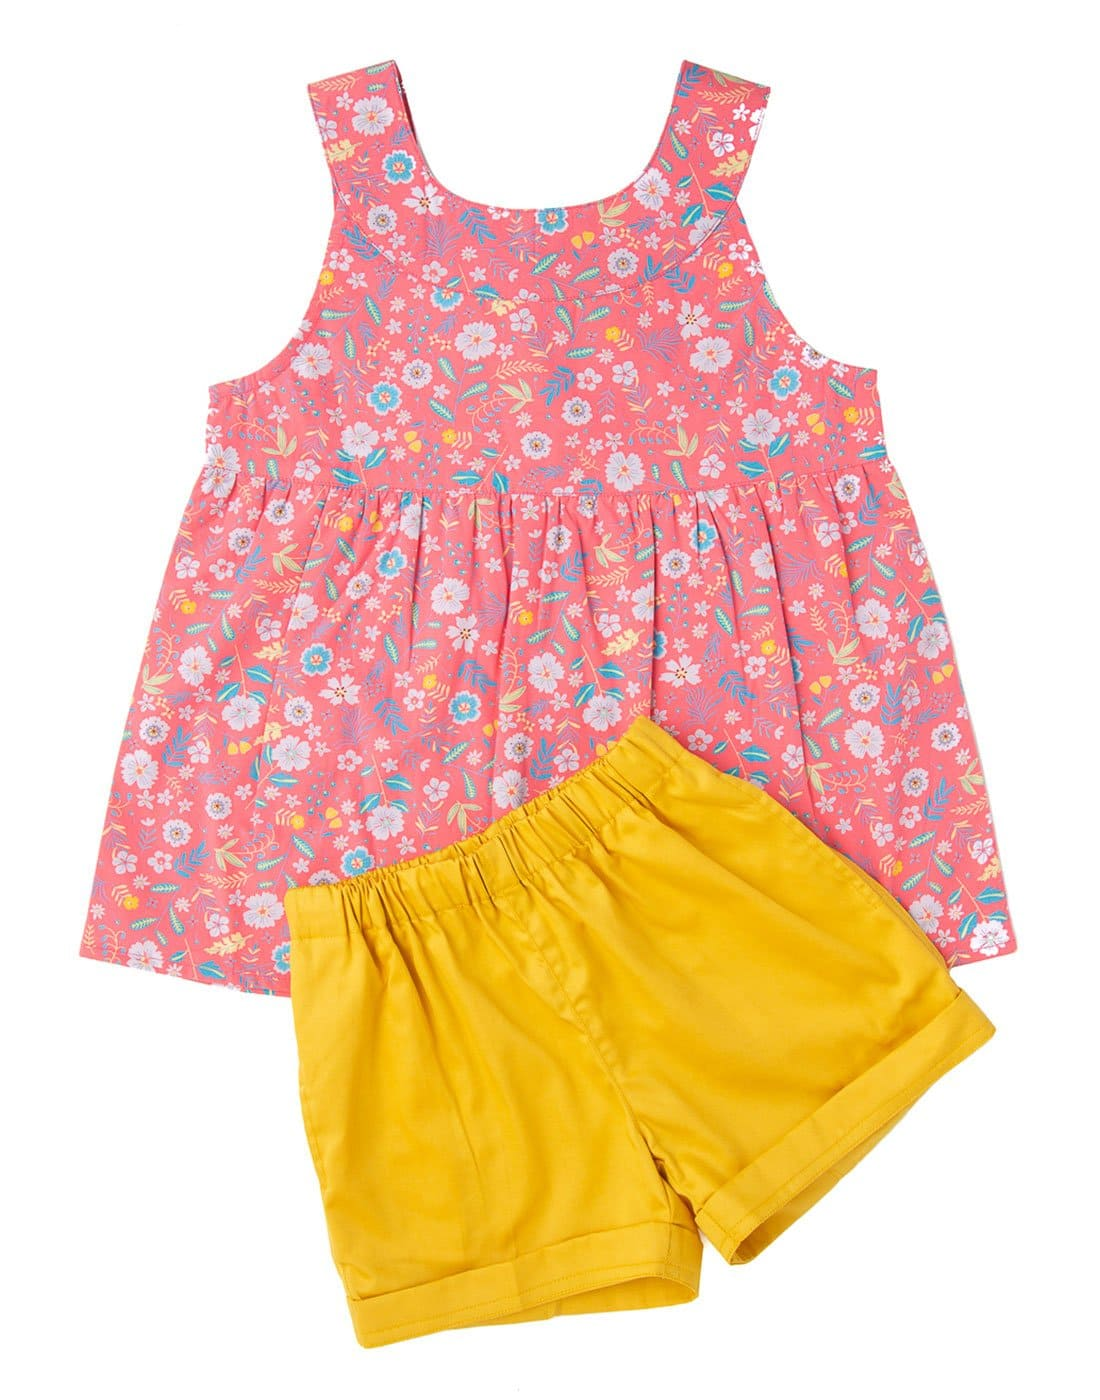 Candy Pink Printed Floral Top With Mustard Shorts